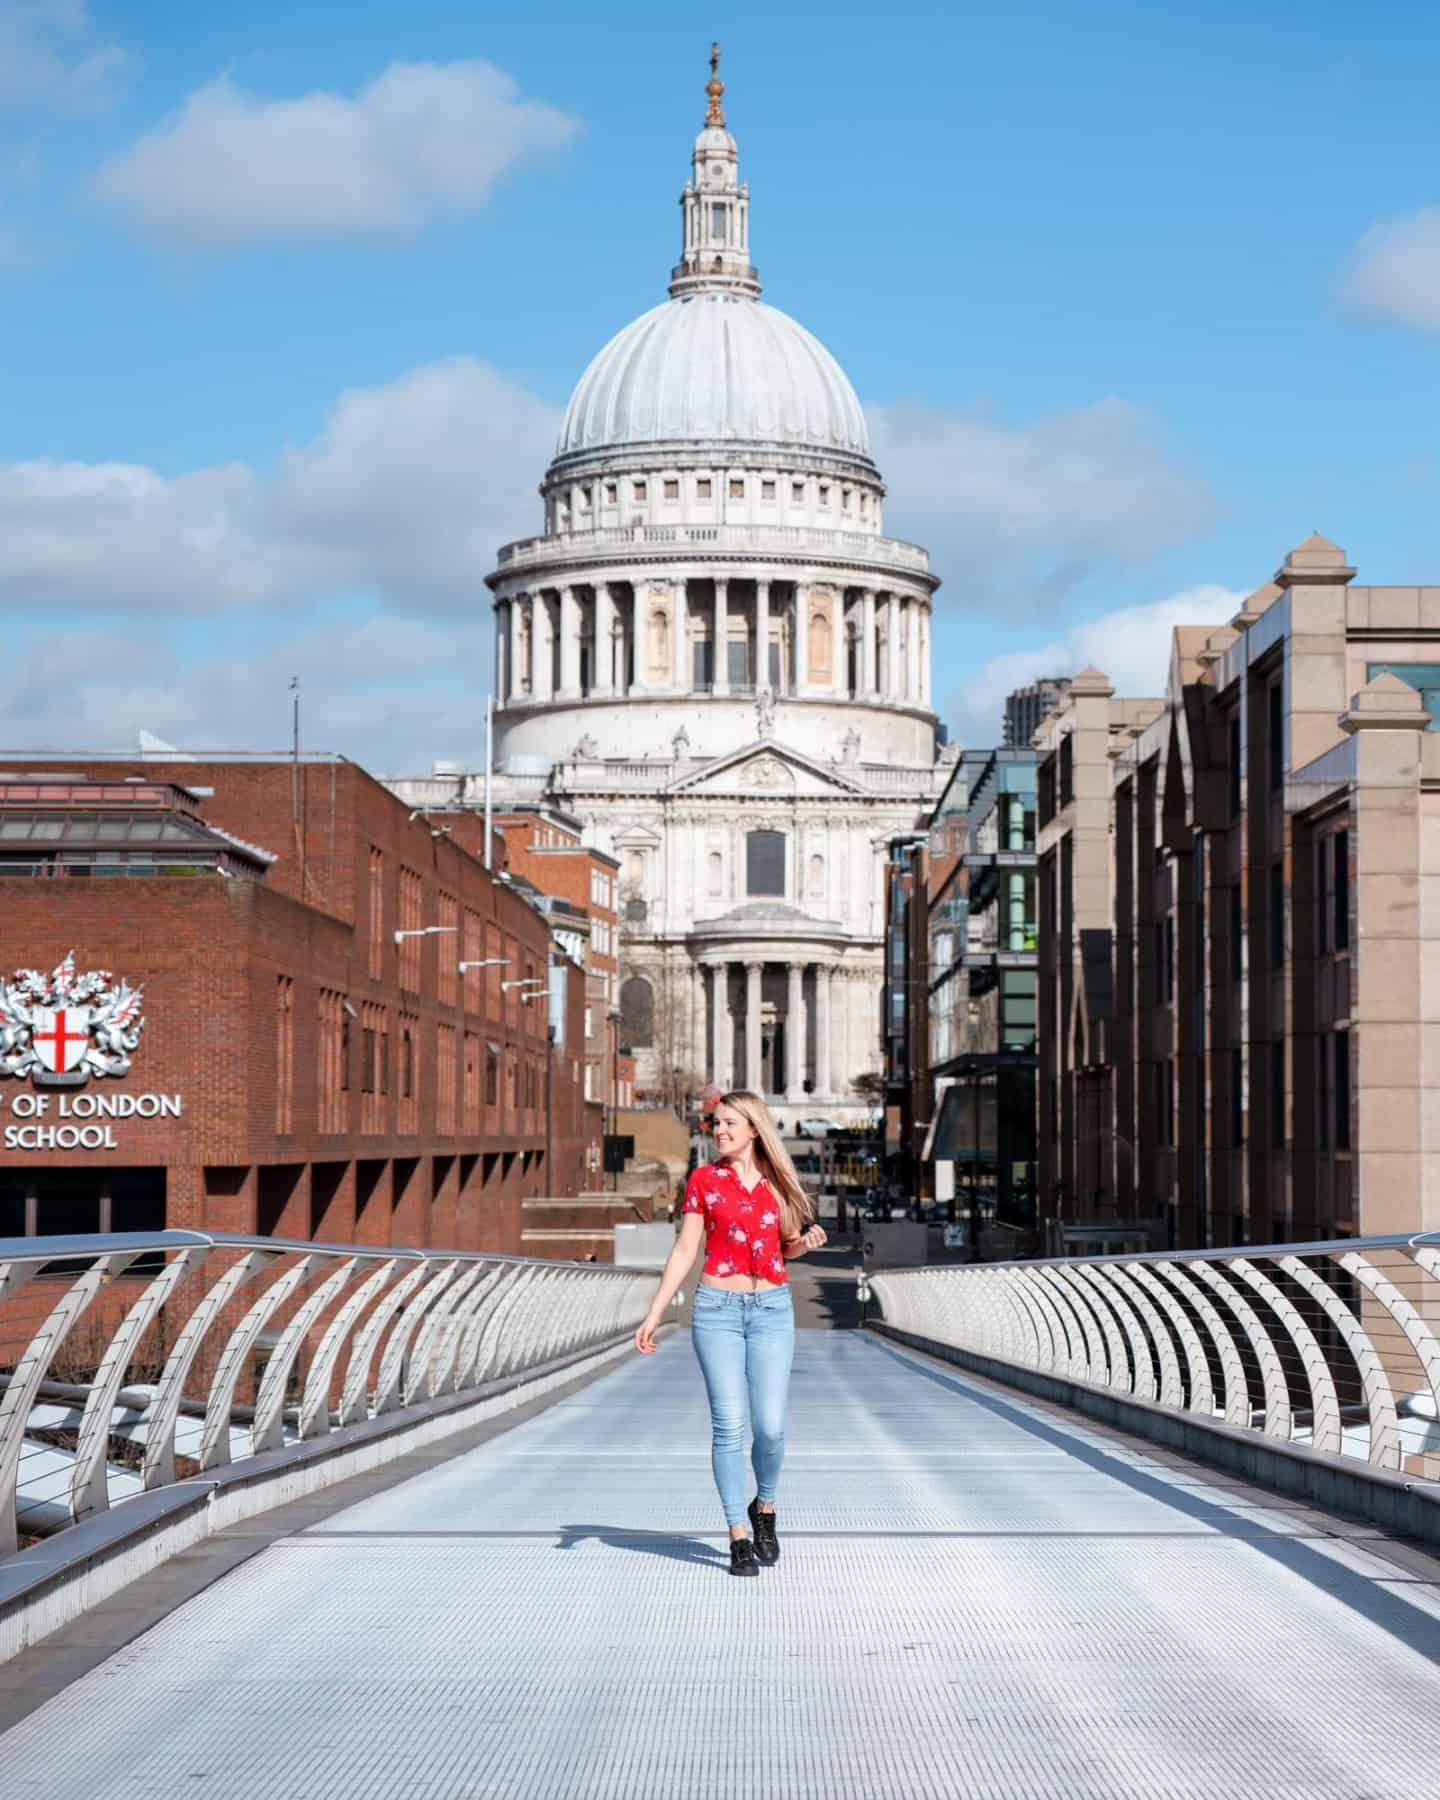 A girl walking along Millennium Bridge with St Paul's Cathedral in the background - two of London's famous landmarks